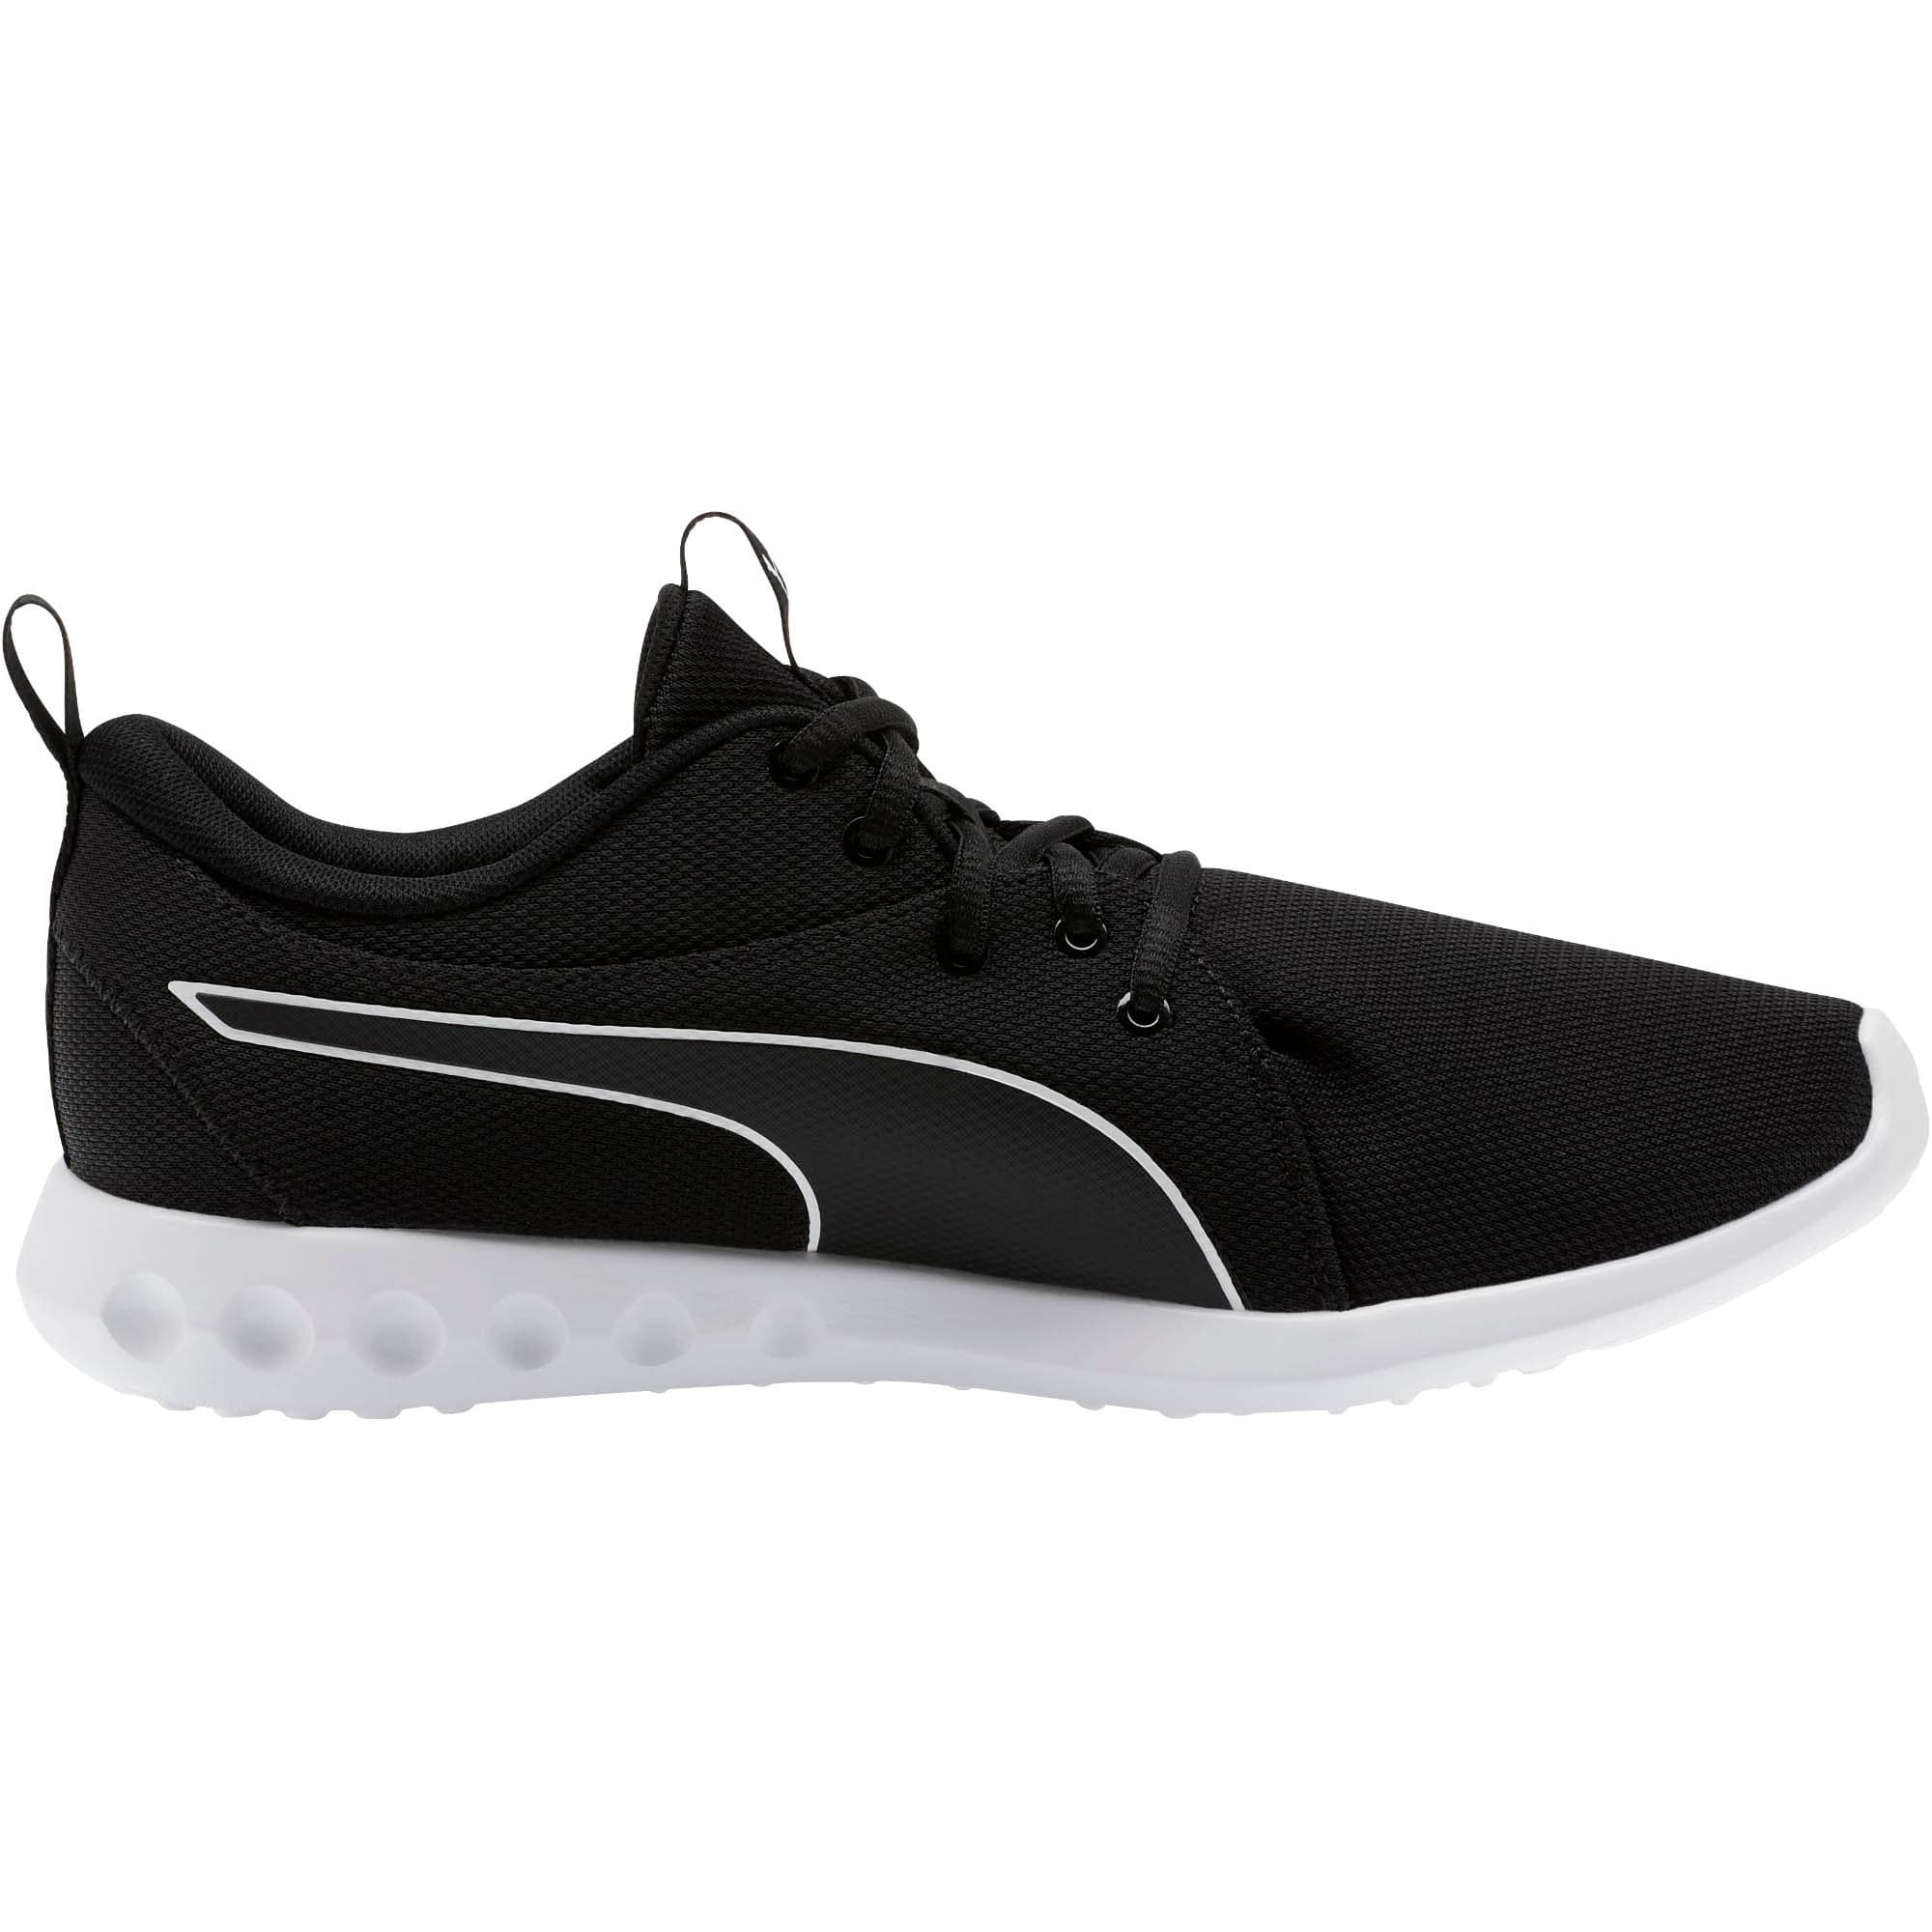 Thumbnail 4 of Carson 2 Cosmo Men's Running Shoes, Puma Black-Puma White, medium